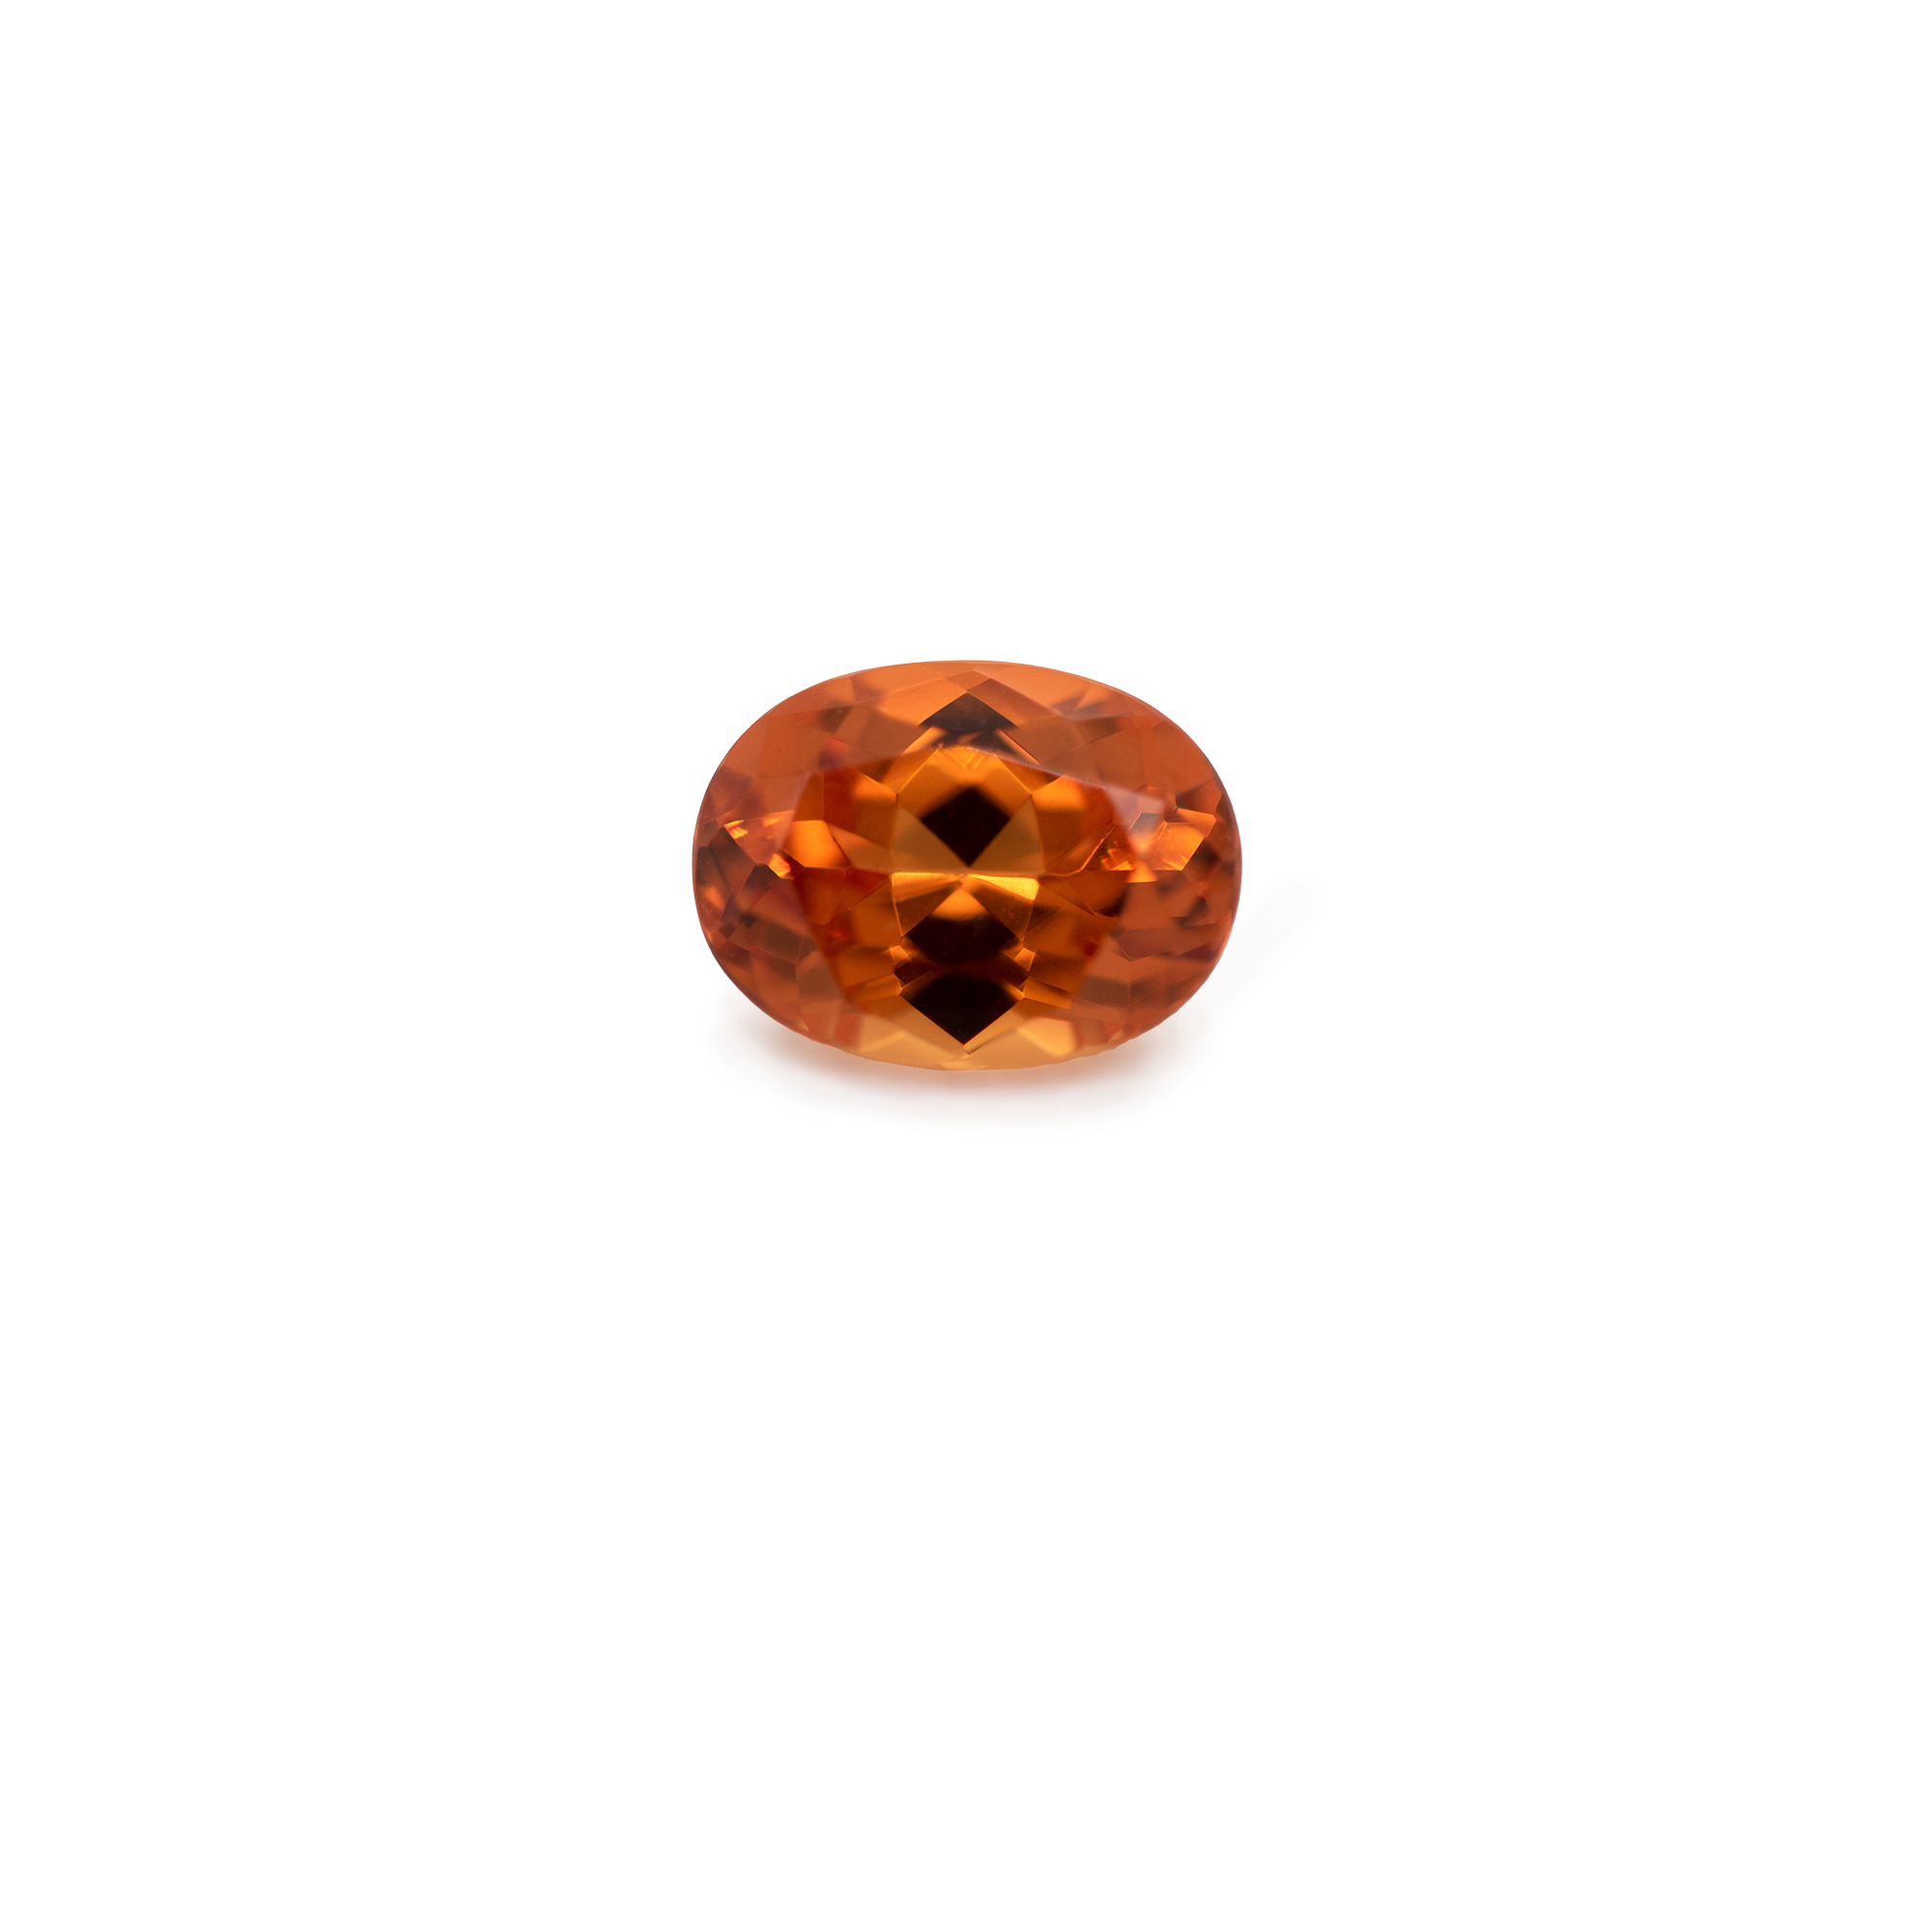 Mandarin Granat - orange, oval, 8x6 mm, 1,72 cts, Nr. MG20002